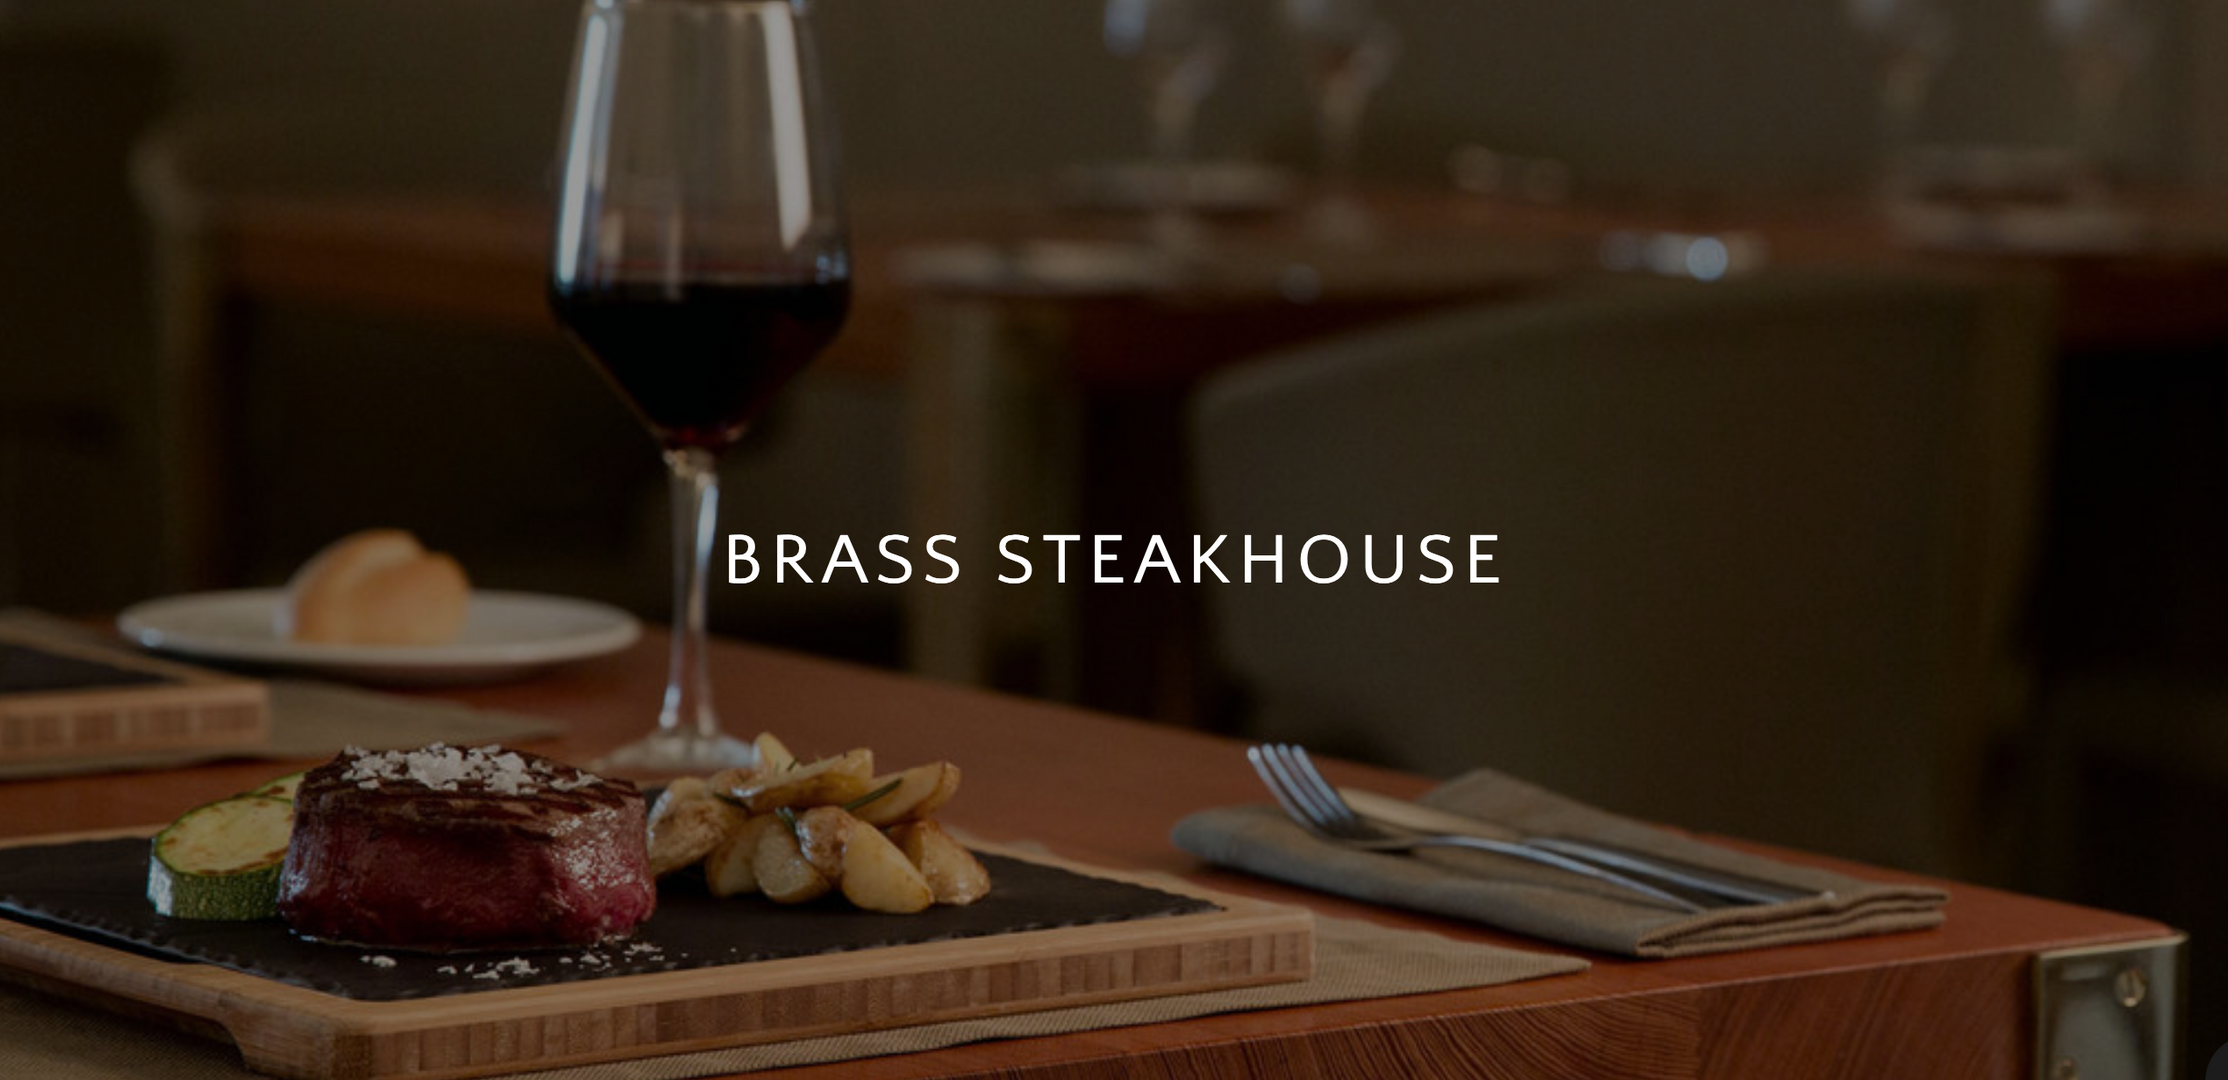 BRASS STEAKHOUSE